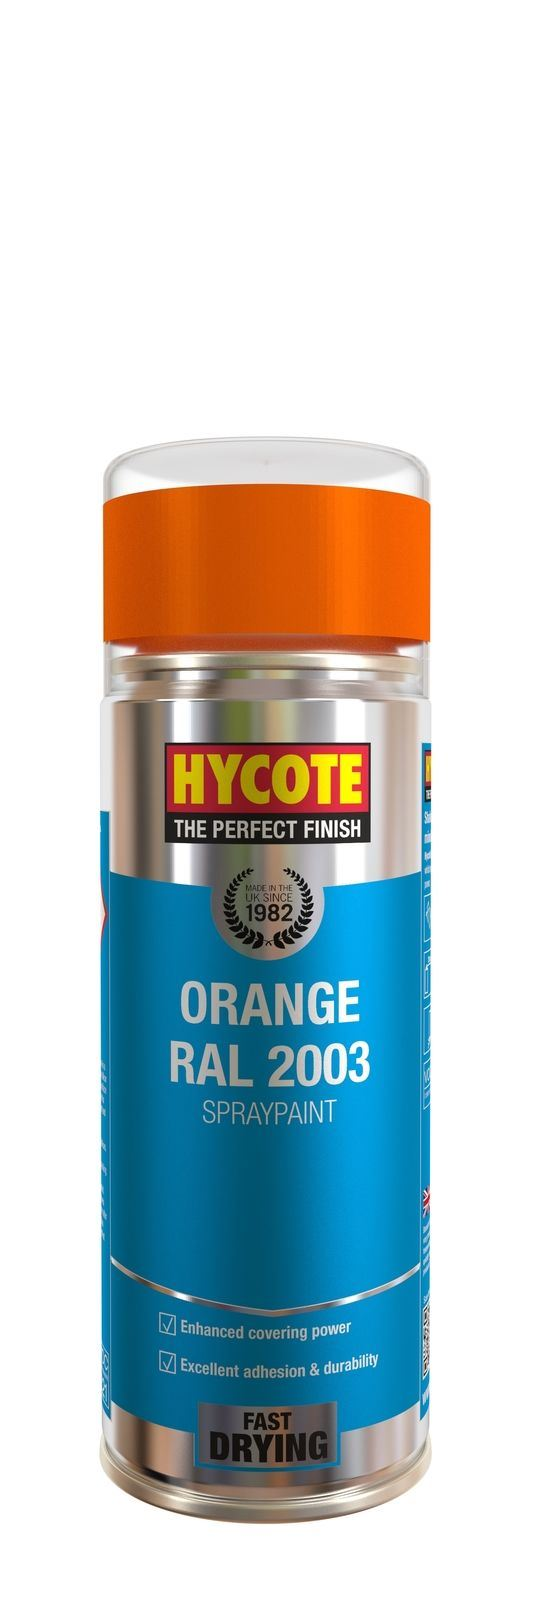 Hycote Orange Ral 2003 Paint - 400ml